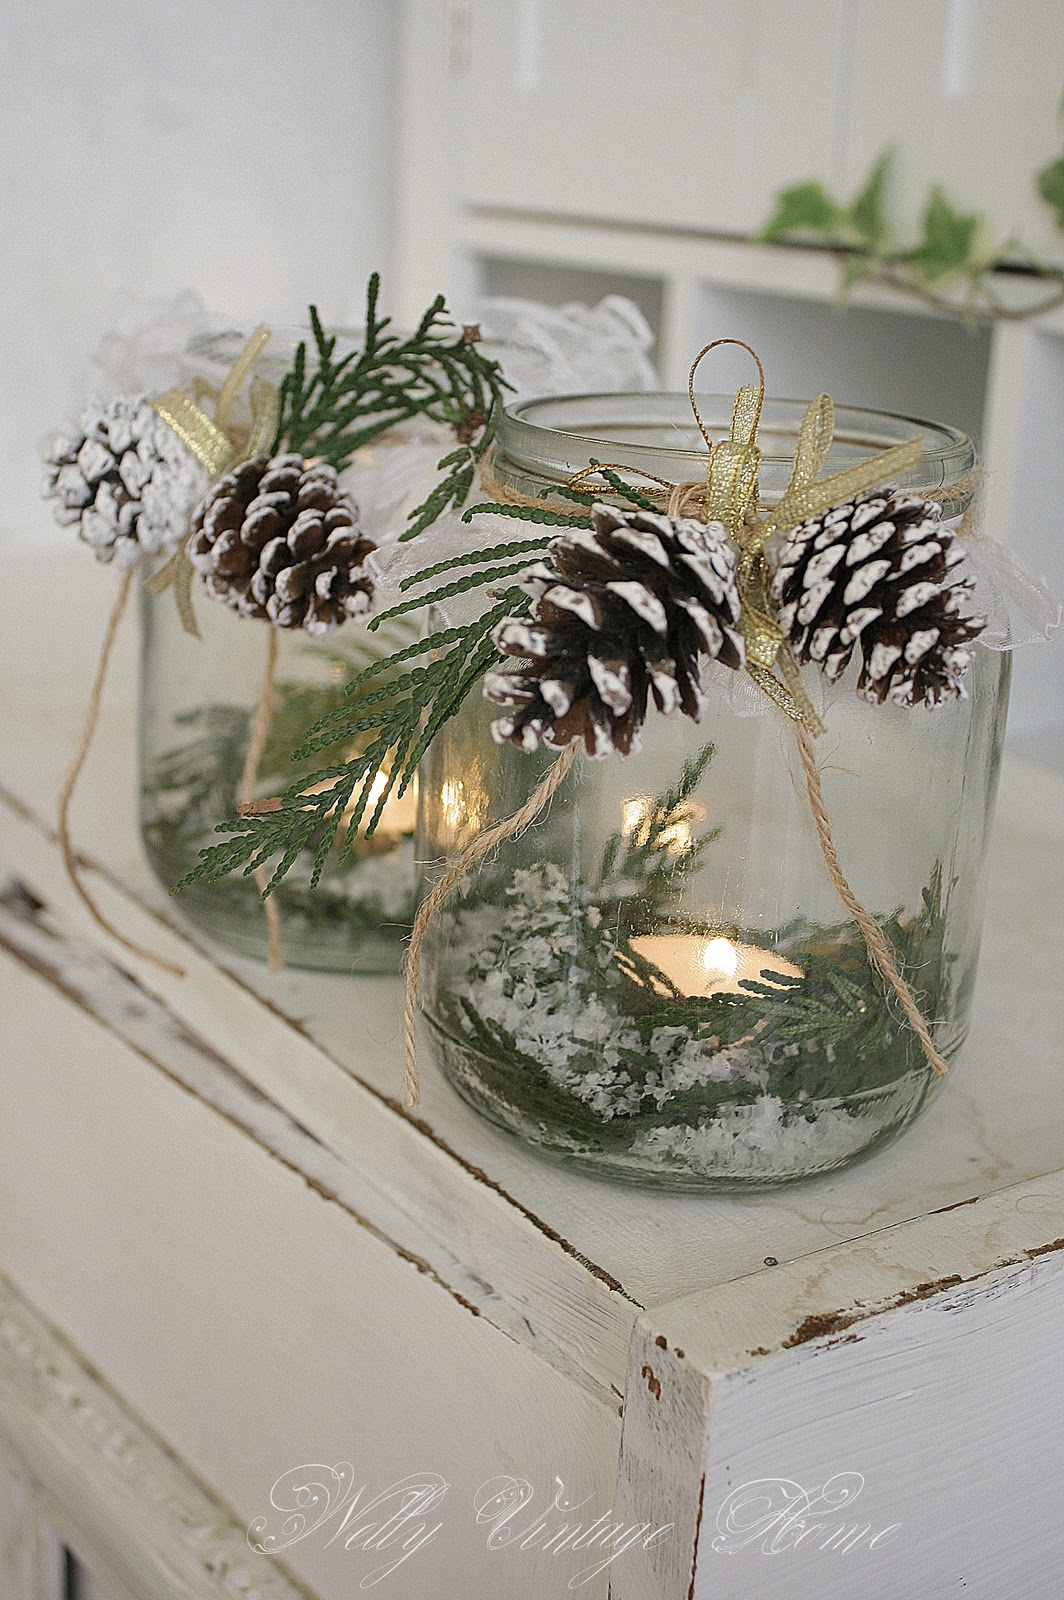 Tea light in a jar with greens